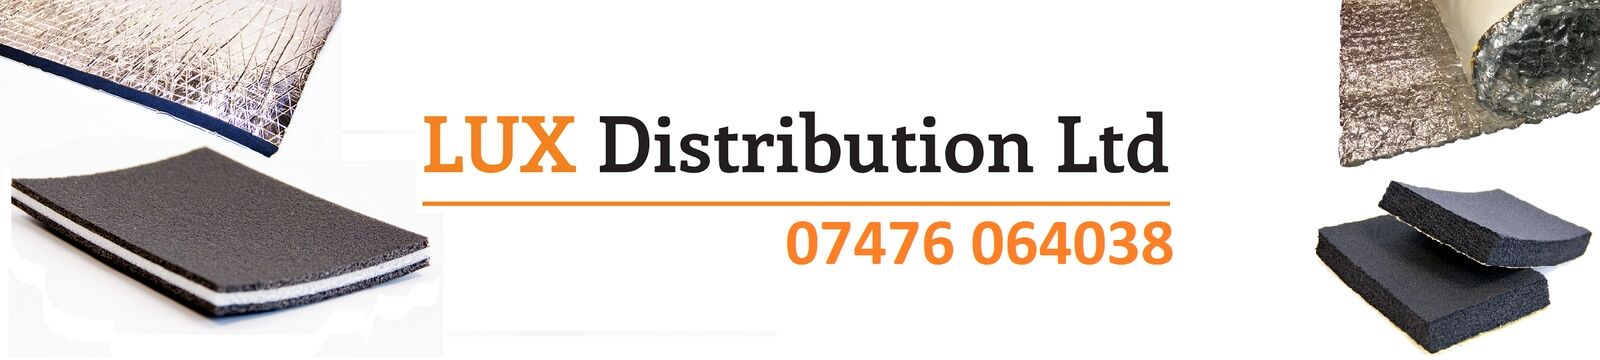 lux_distribution_ltd